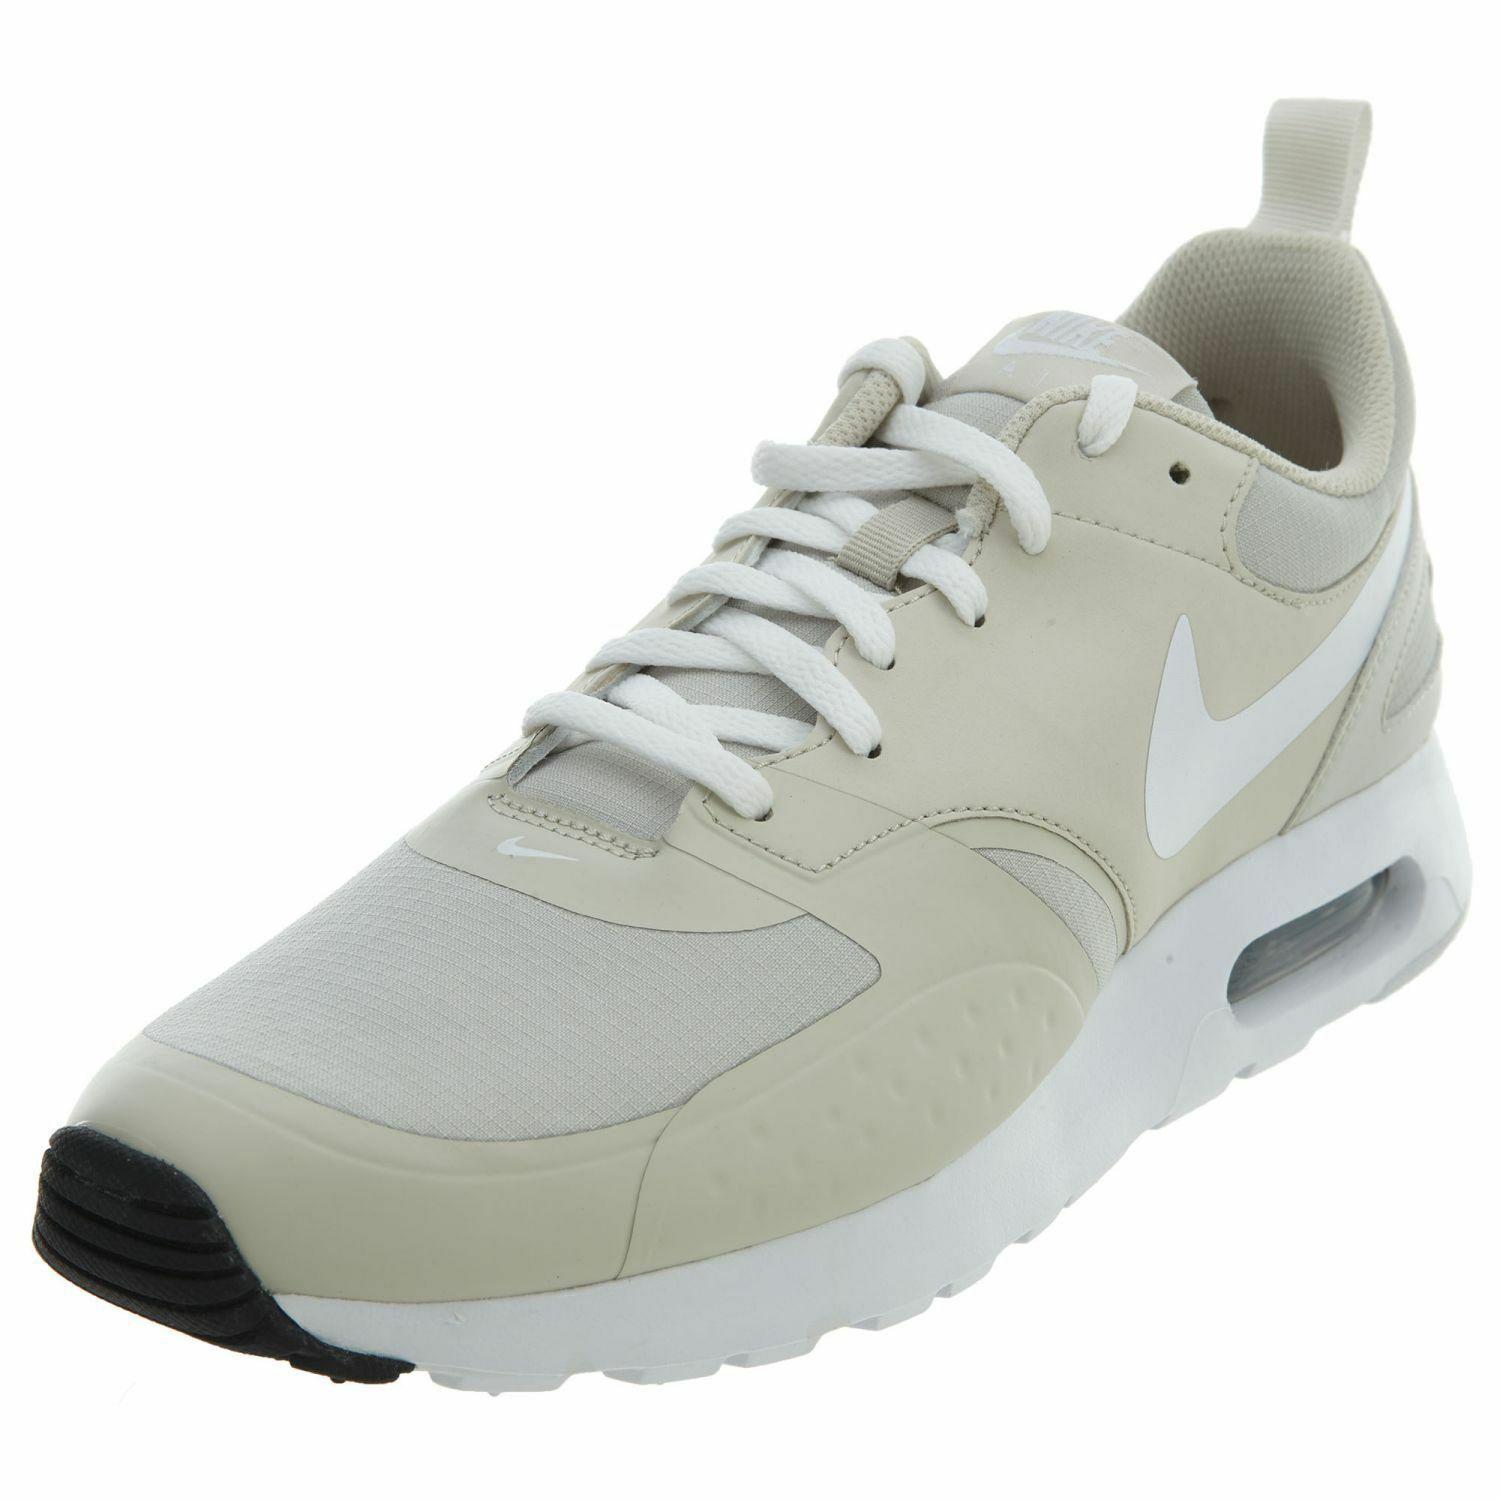 Brand New Men's Nike Air Max Vision Running Nice!!! Shoes Size 10.5 Very Nice!!! Running 16bce9